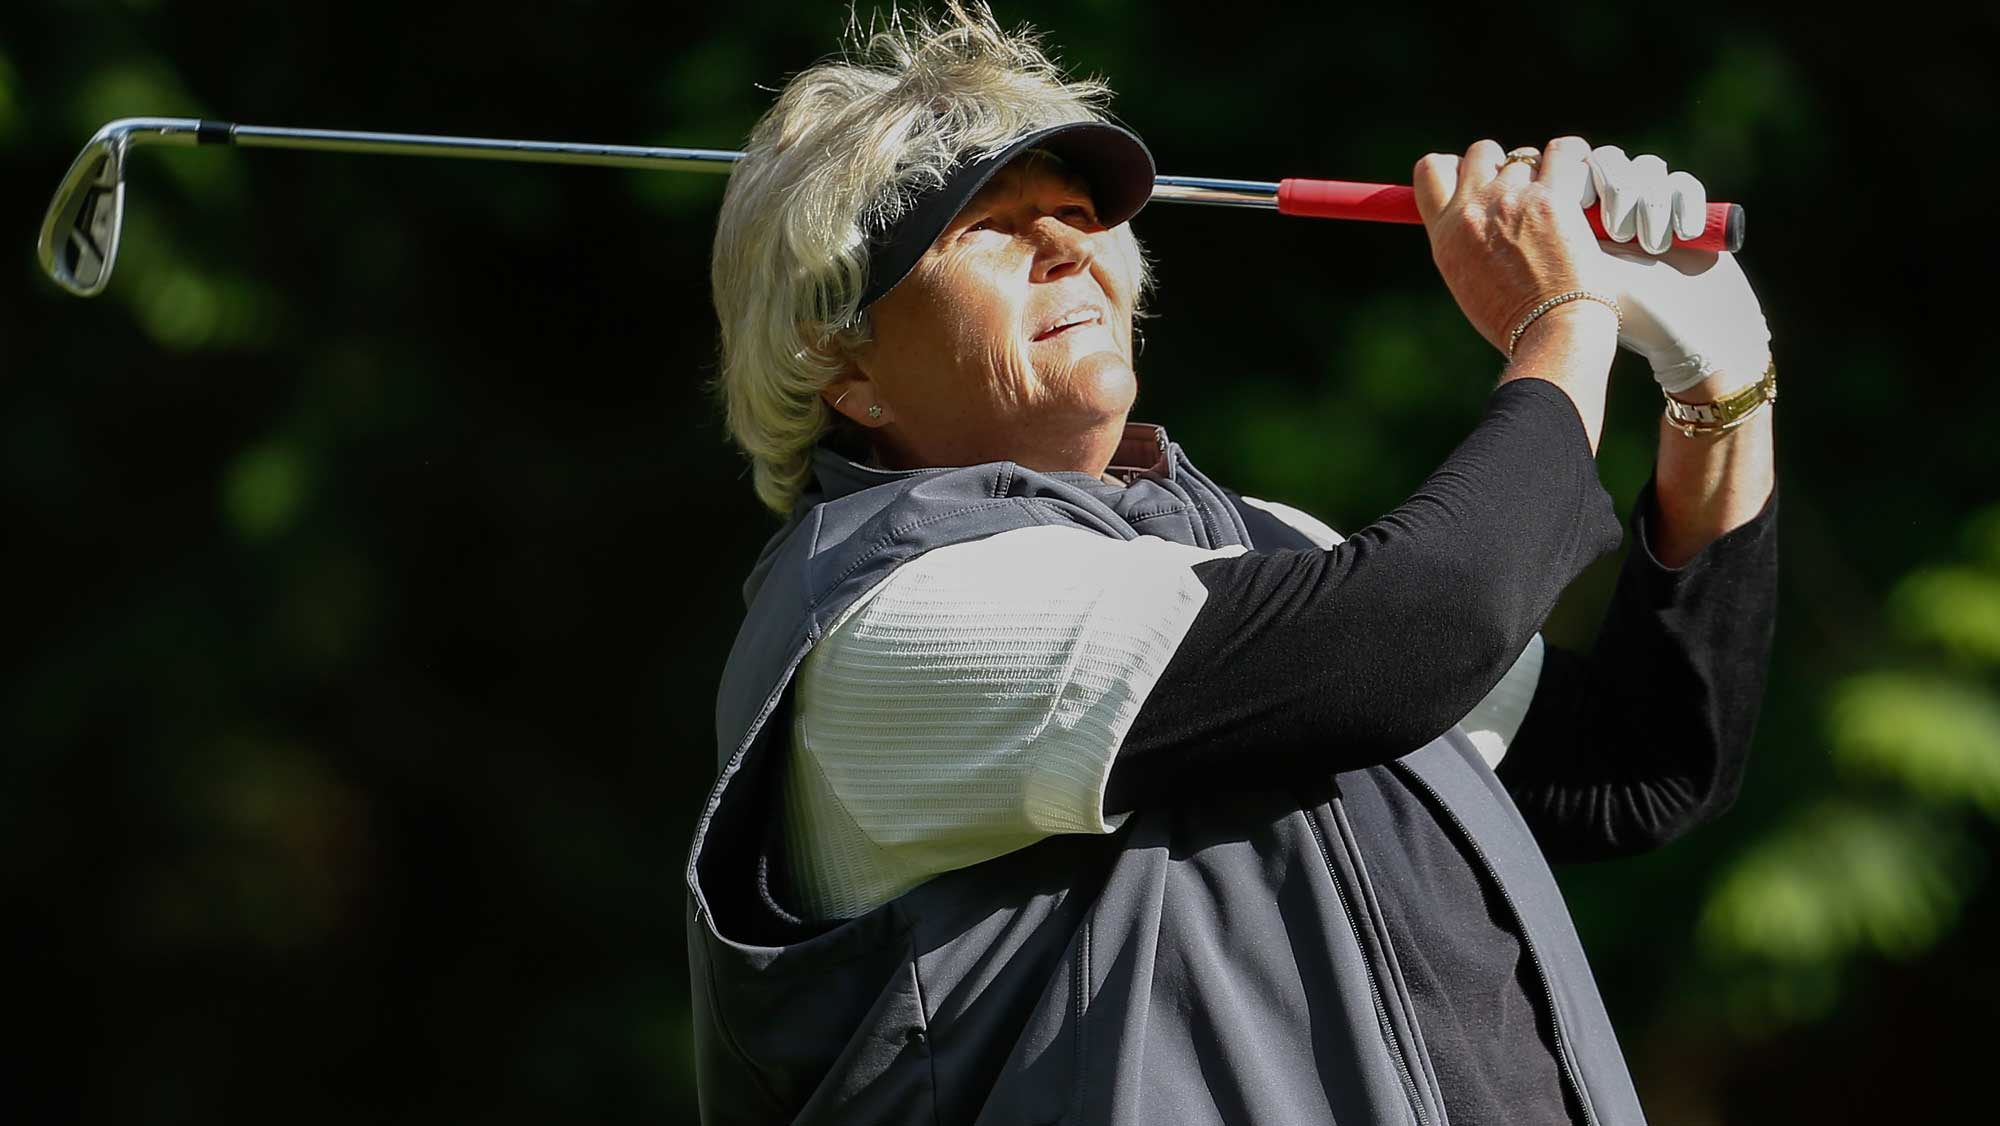 Laura Davies of England hits a tee shot on the 13th tee during the second round of the KPMG Women's PGA Championship